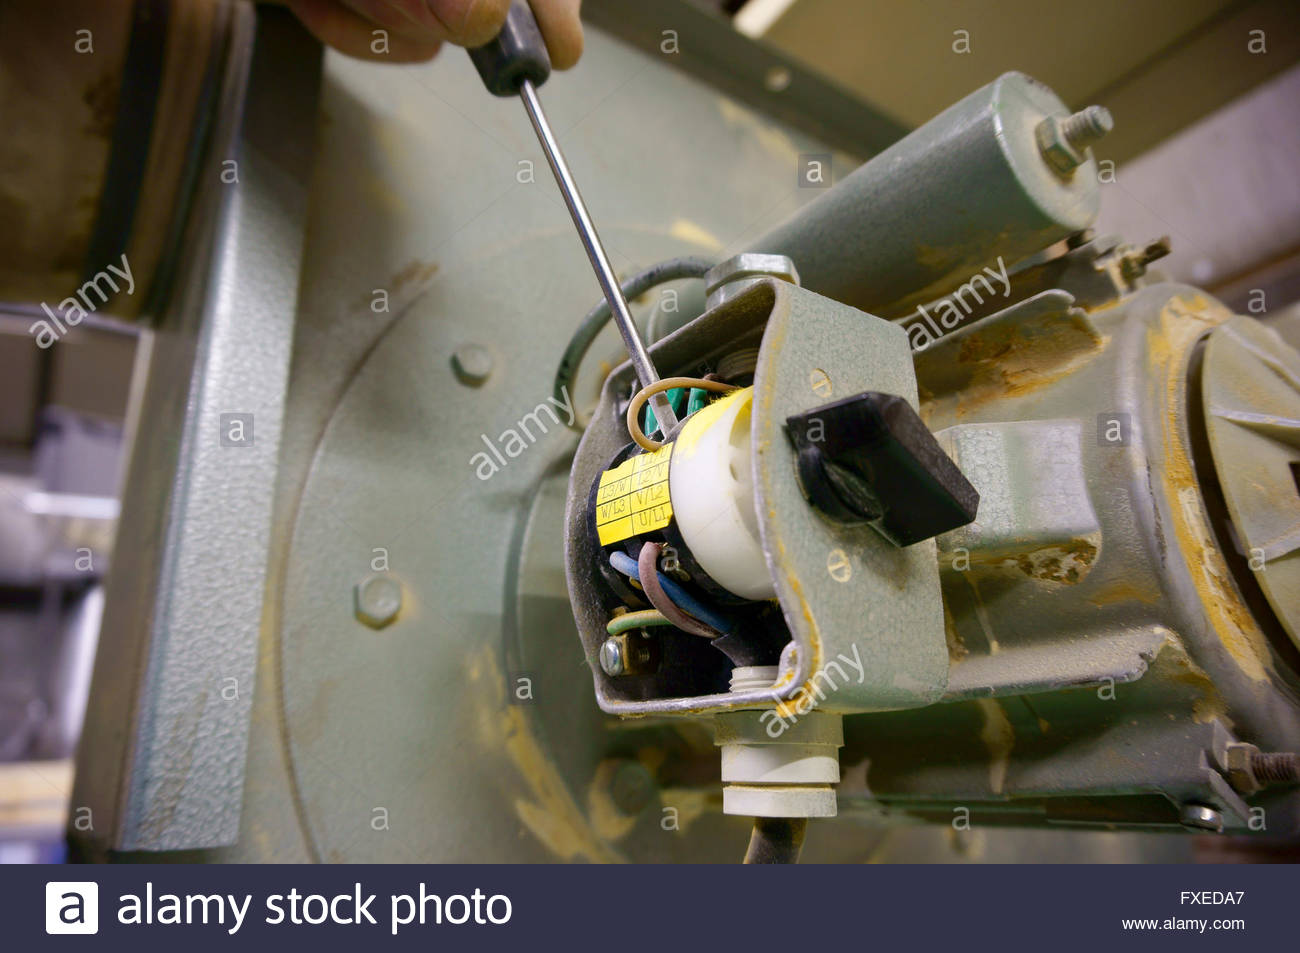 Wiring Switch Stock Photos Images Alamy Machine Man Image